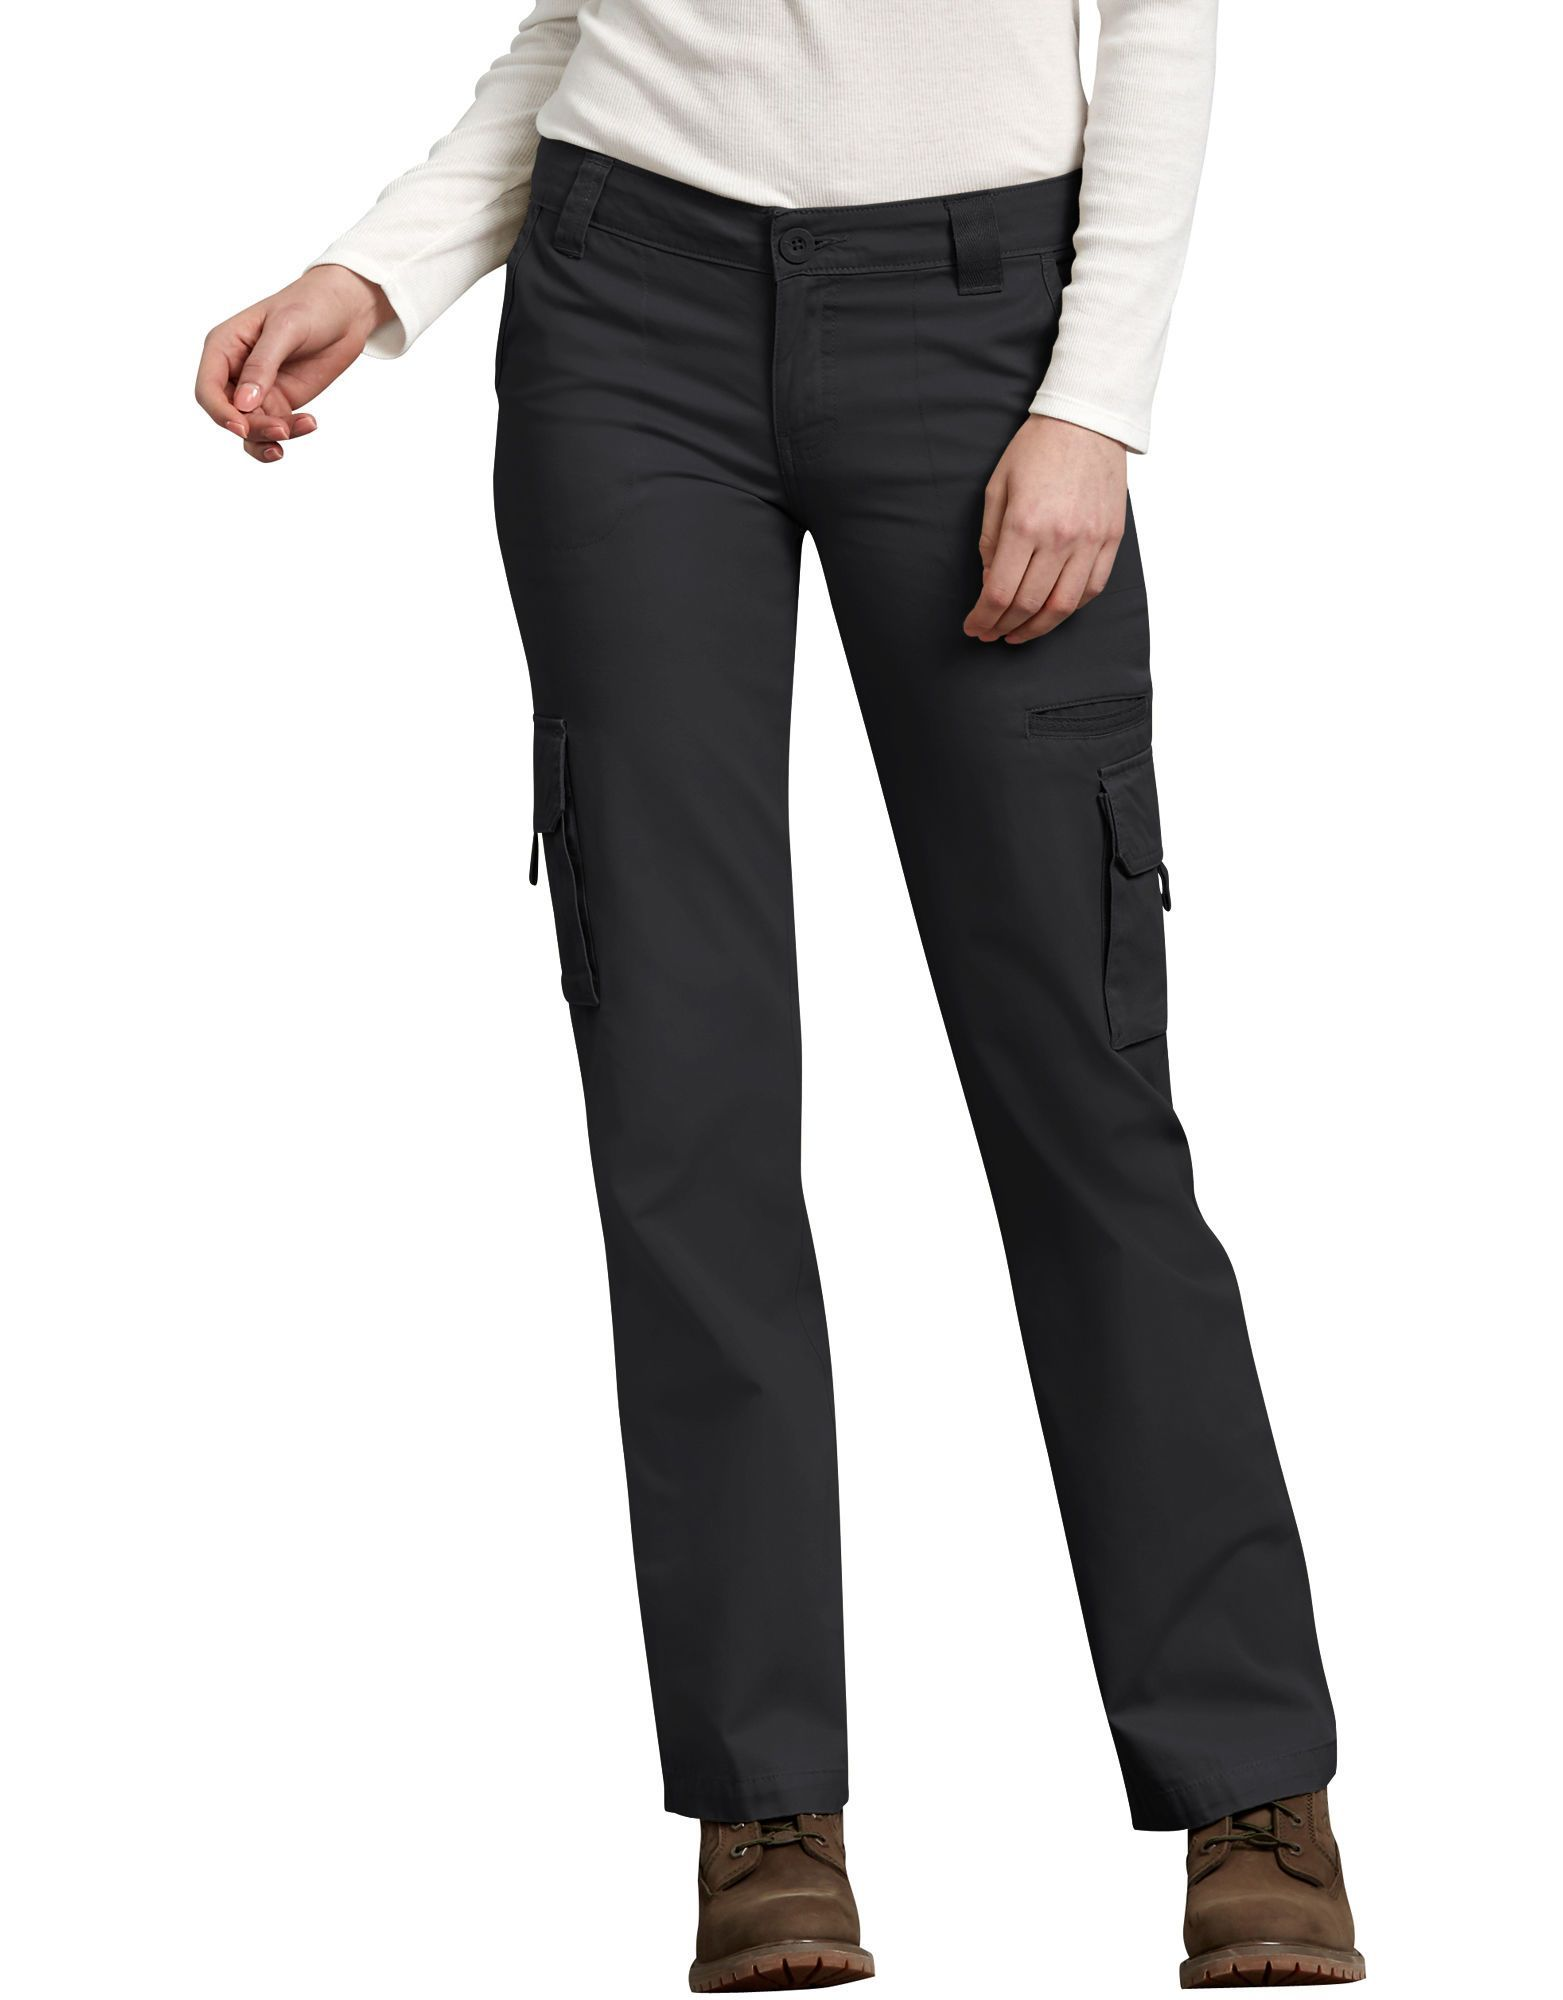 09e92680d4f4b Buy FP777 Cargo Pant - Dickies Online at Best price - PA